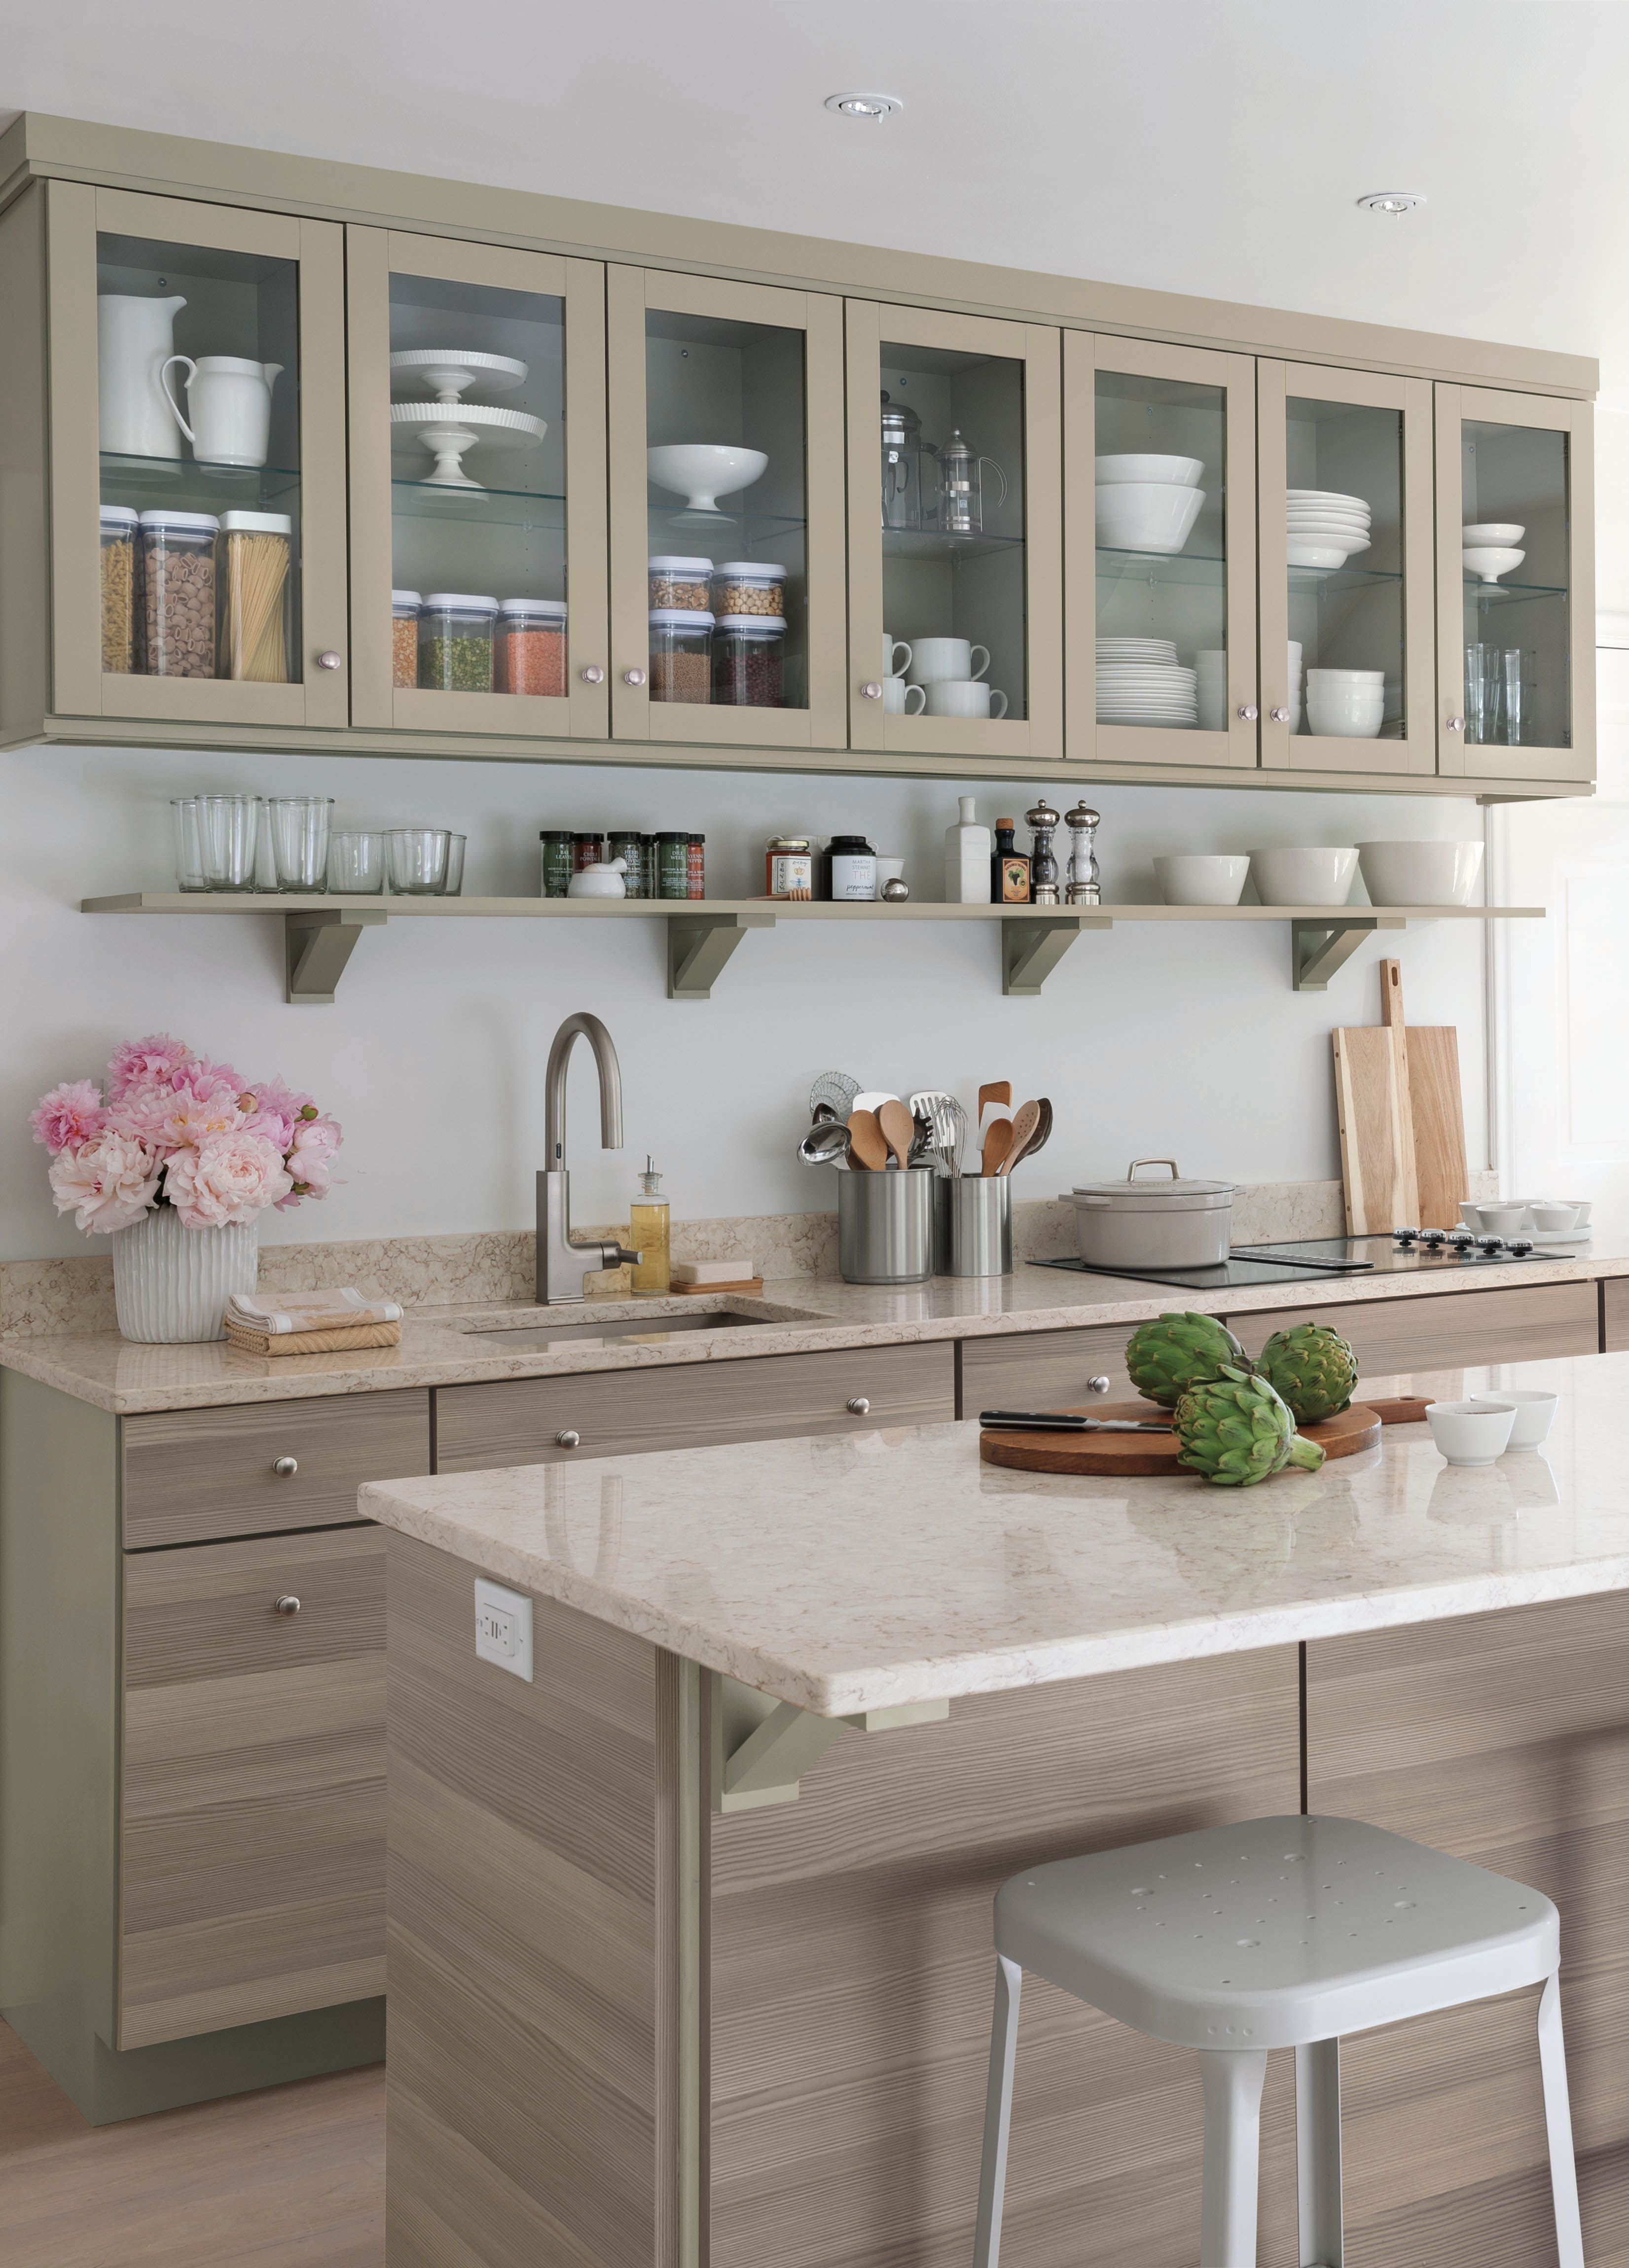 stewart video and drawers lazy your martha kitchen susan to organize cabinets how